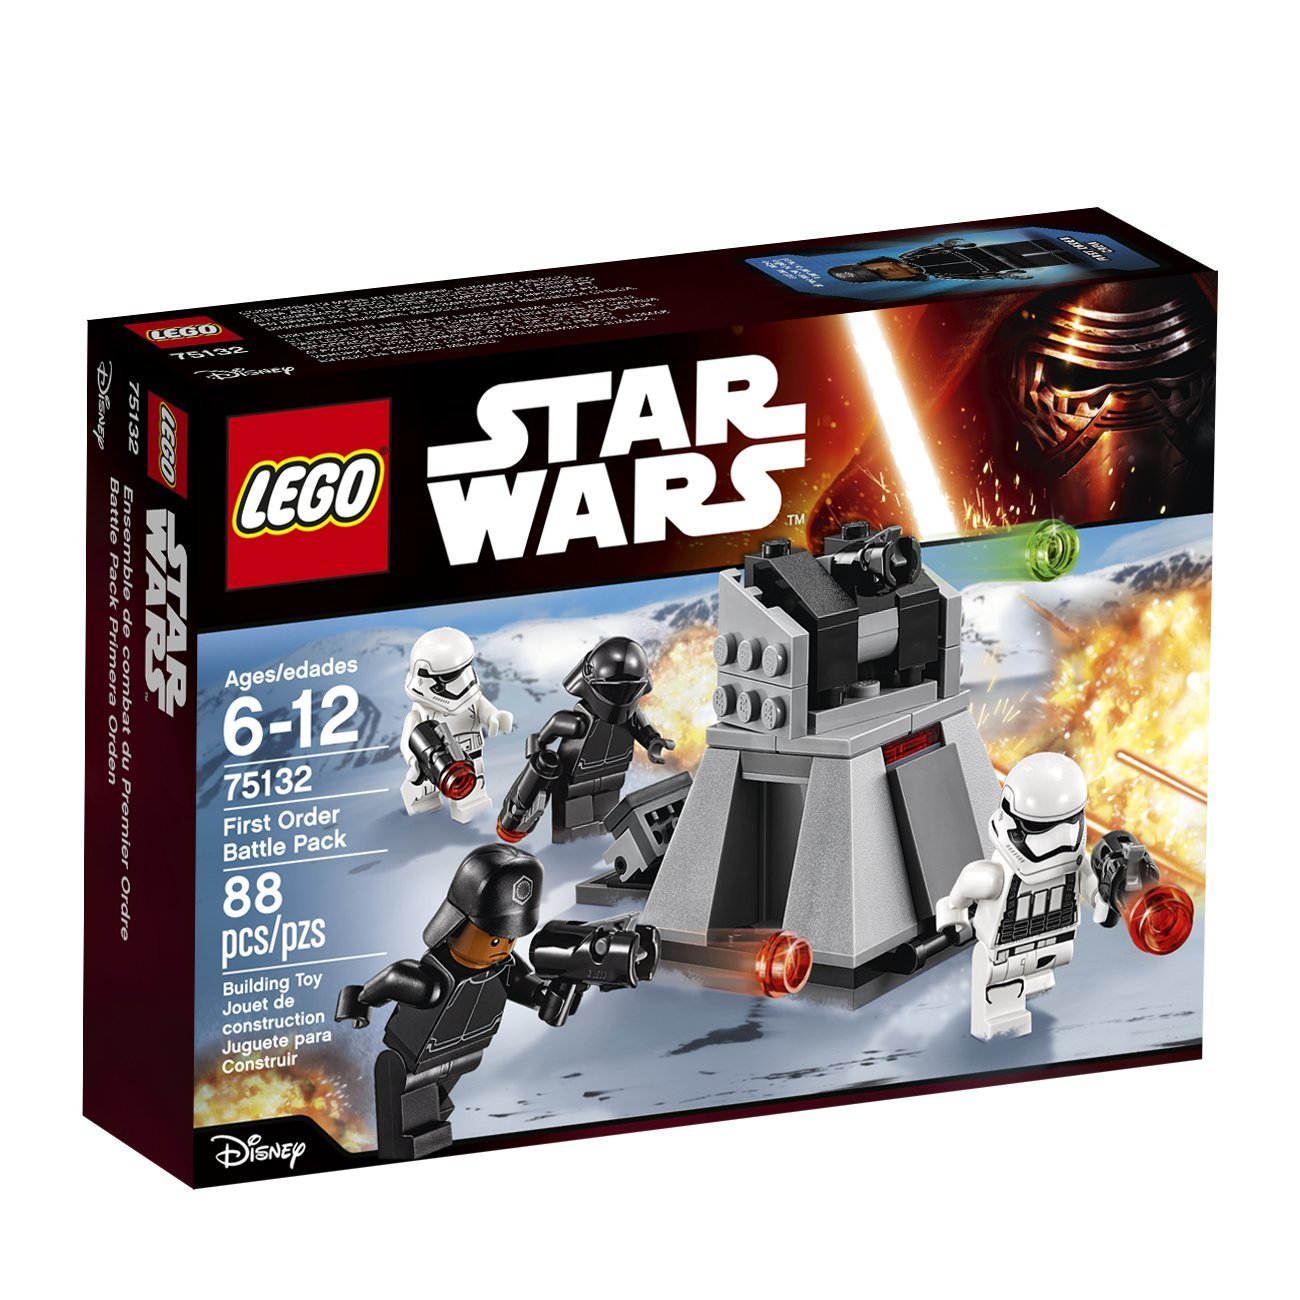 New LEGO Star Wars sets - The Force Awakens